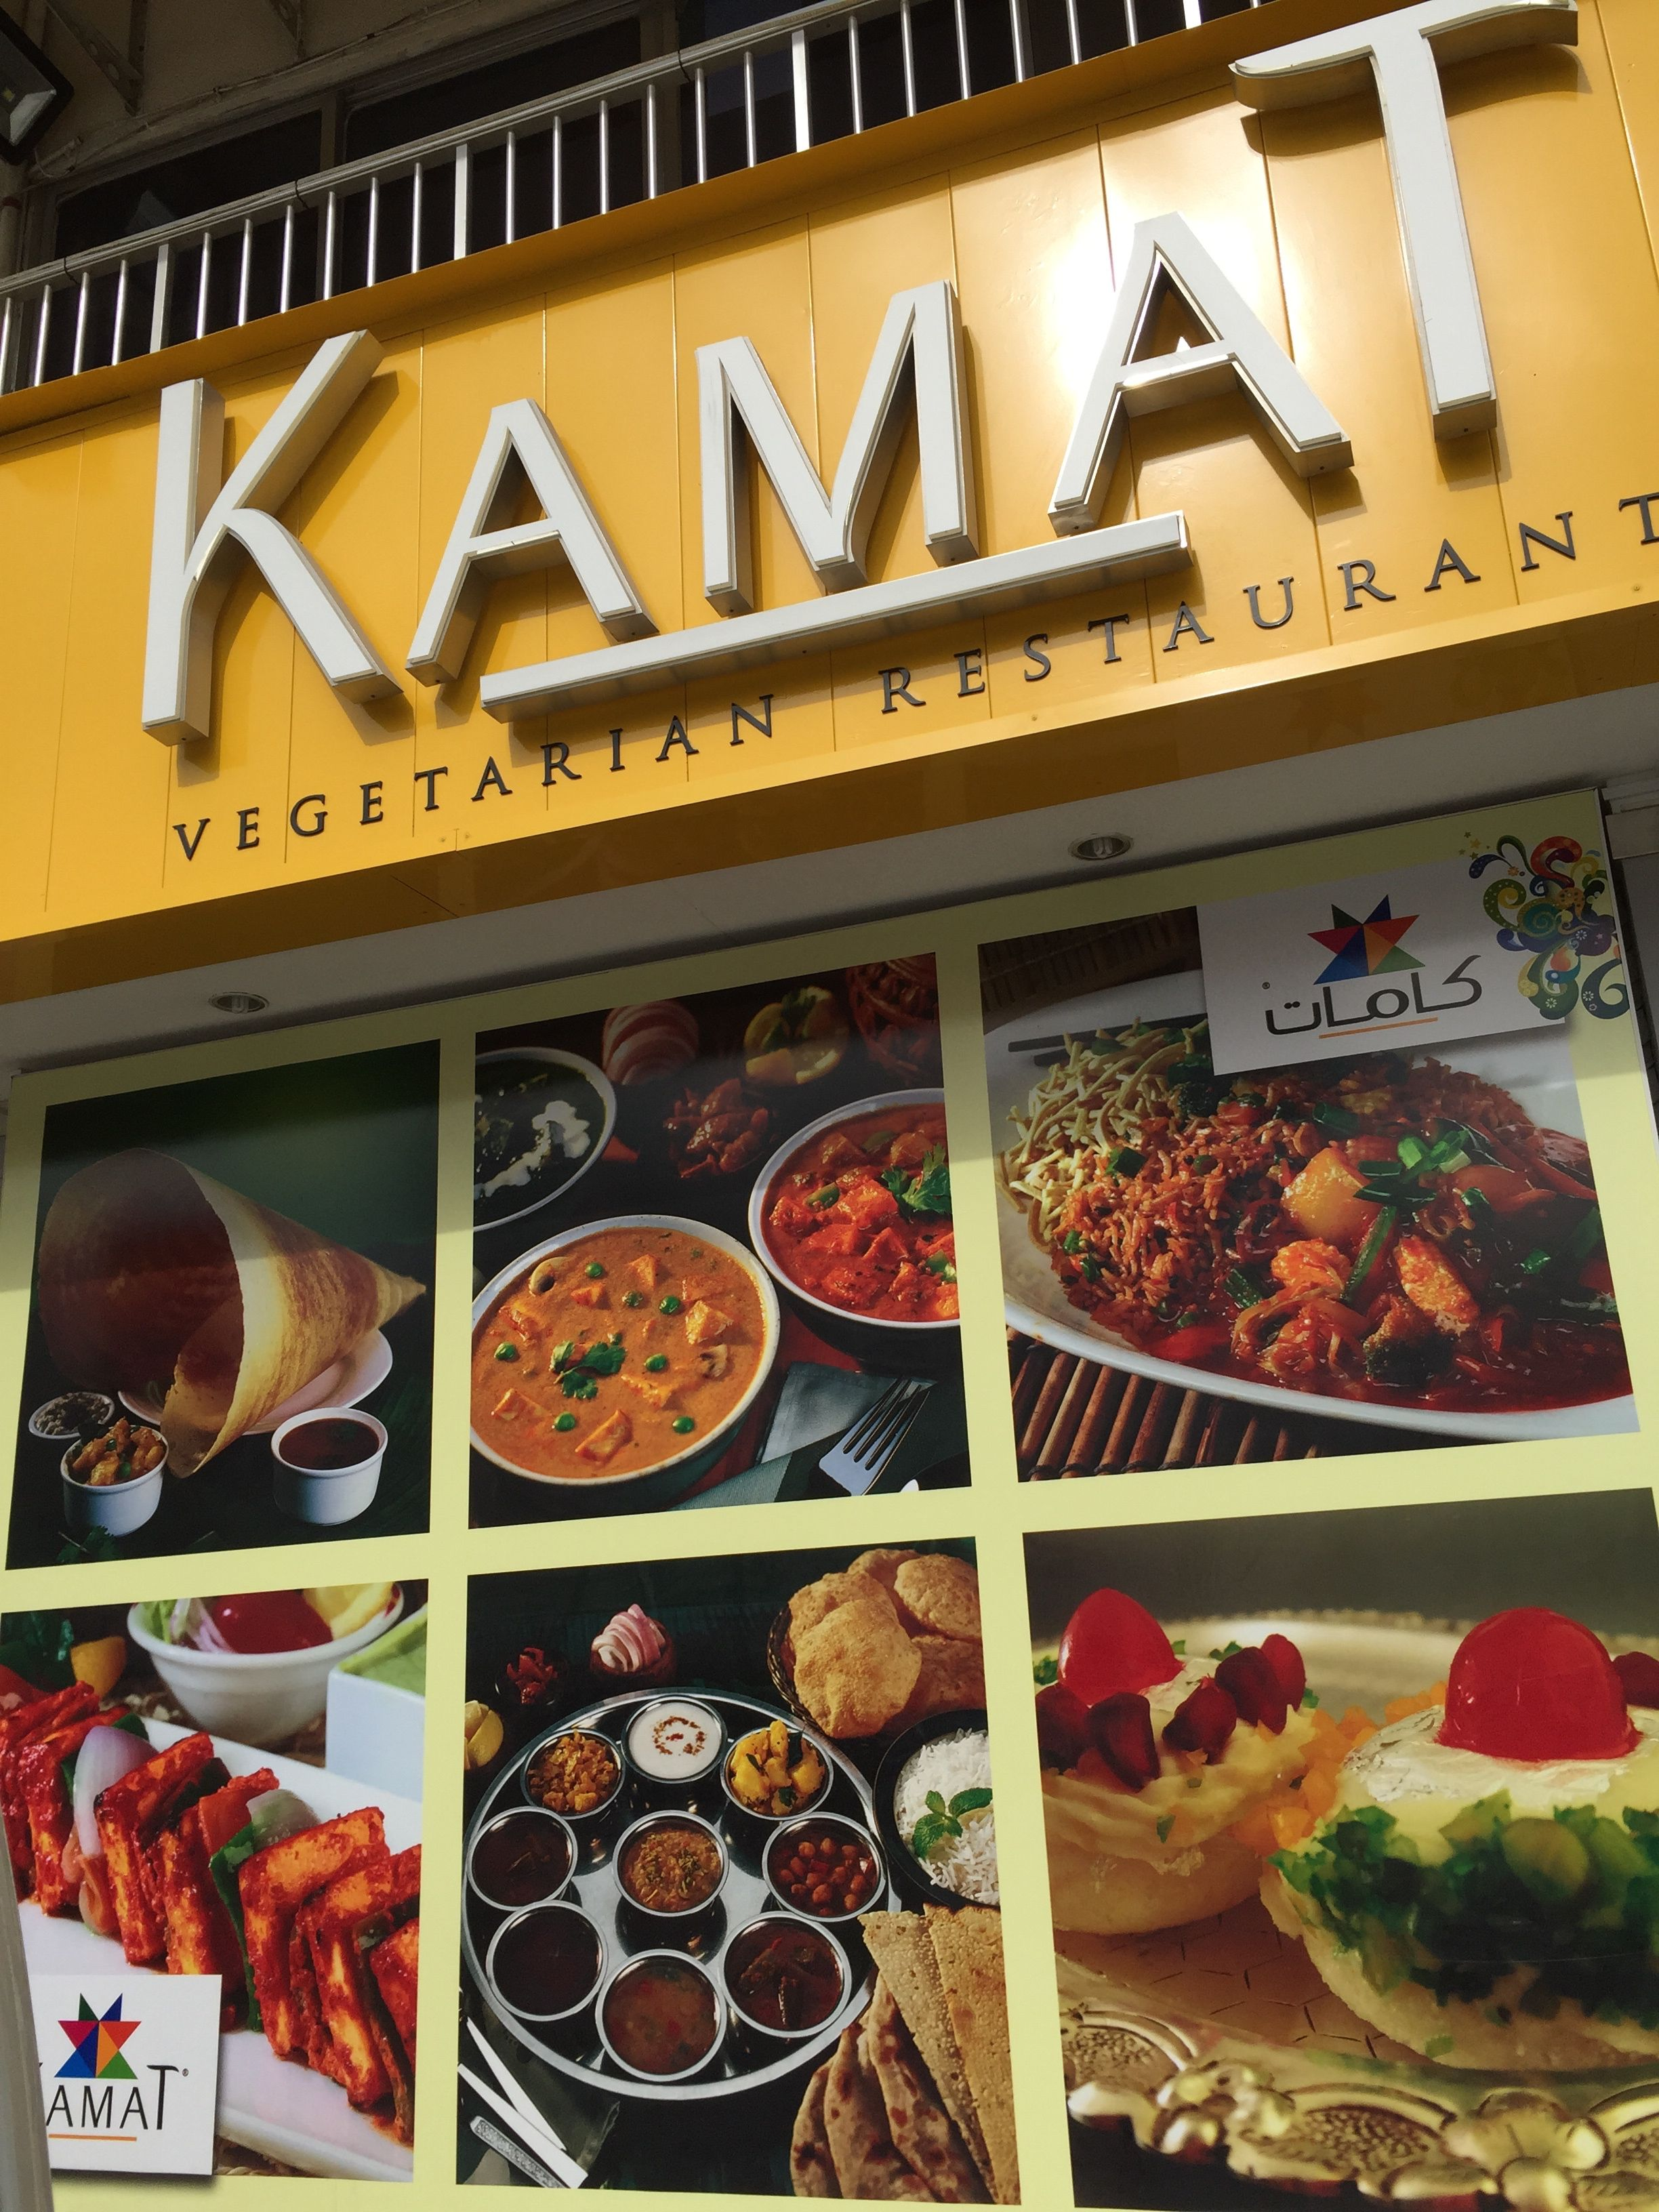 Quality Hygiene Are The 2 Mantras That Make Kamat The Best Vegetarian Restaurant In The Region Right From Sourcing The Fine Food Preparation Veg Restaurant